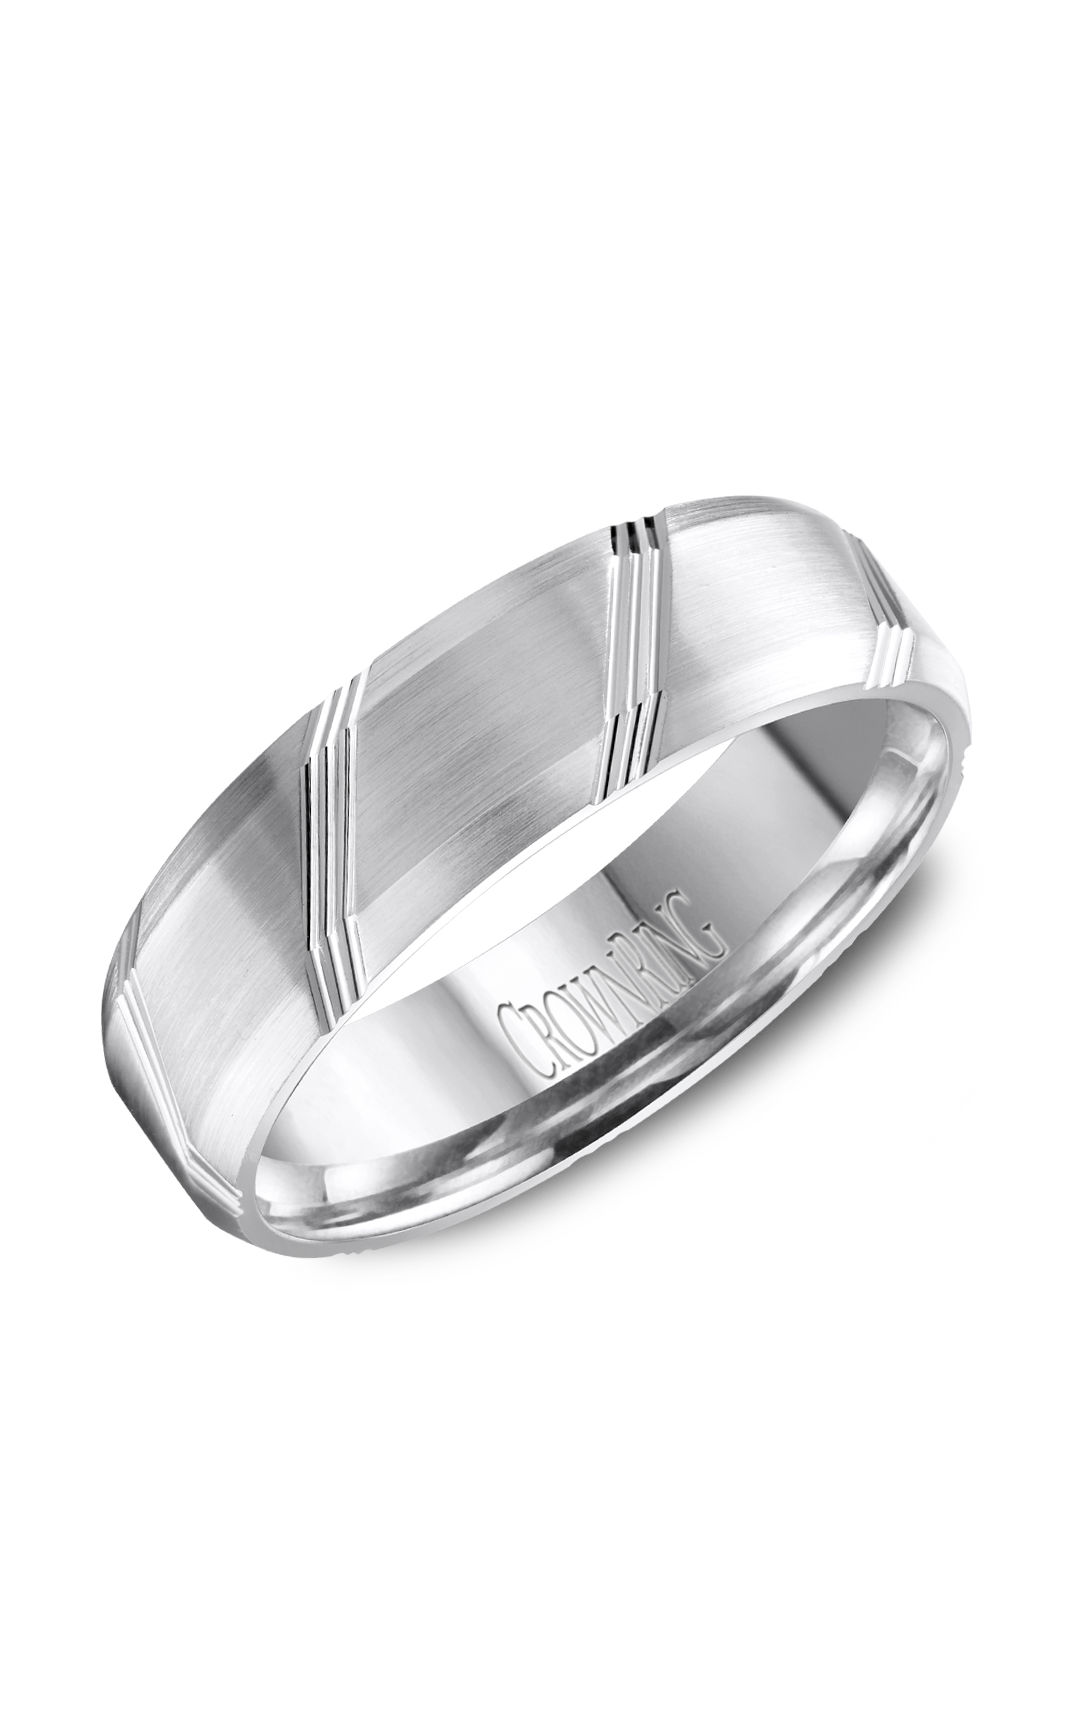 Crown Ring Men's Wedding Band WB-8070 product image